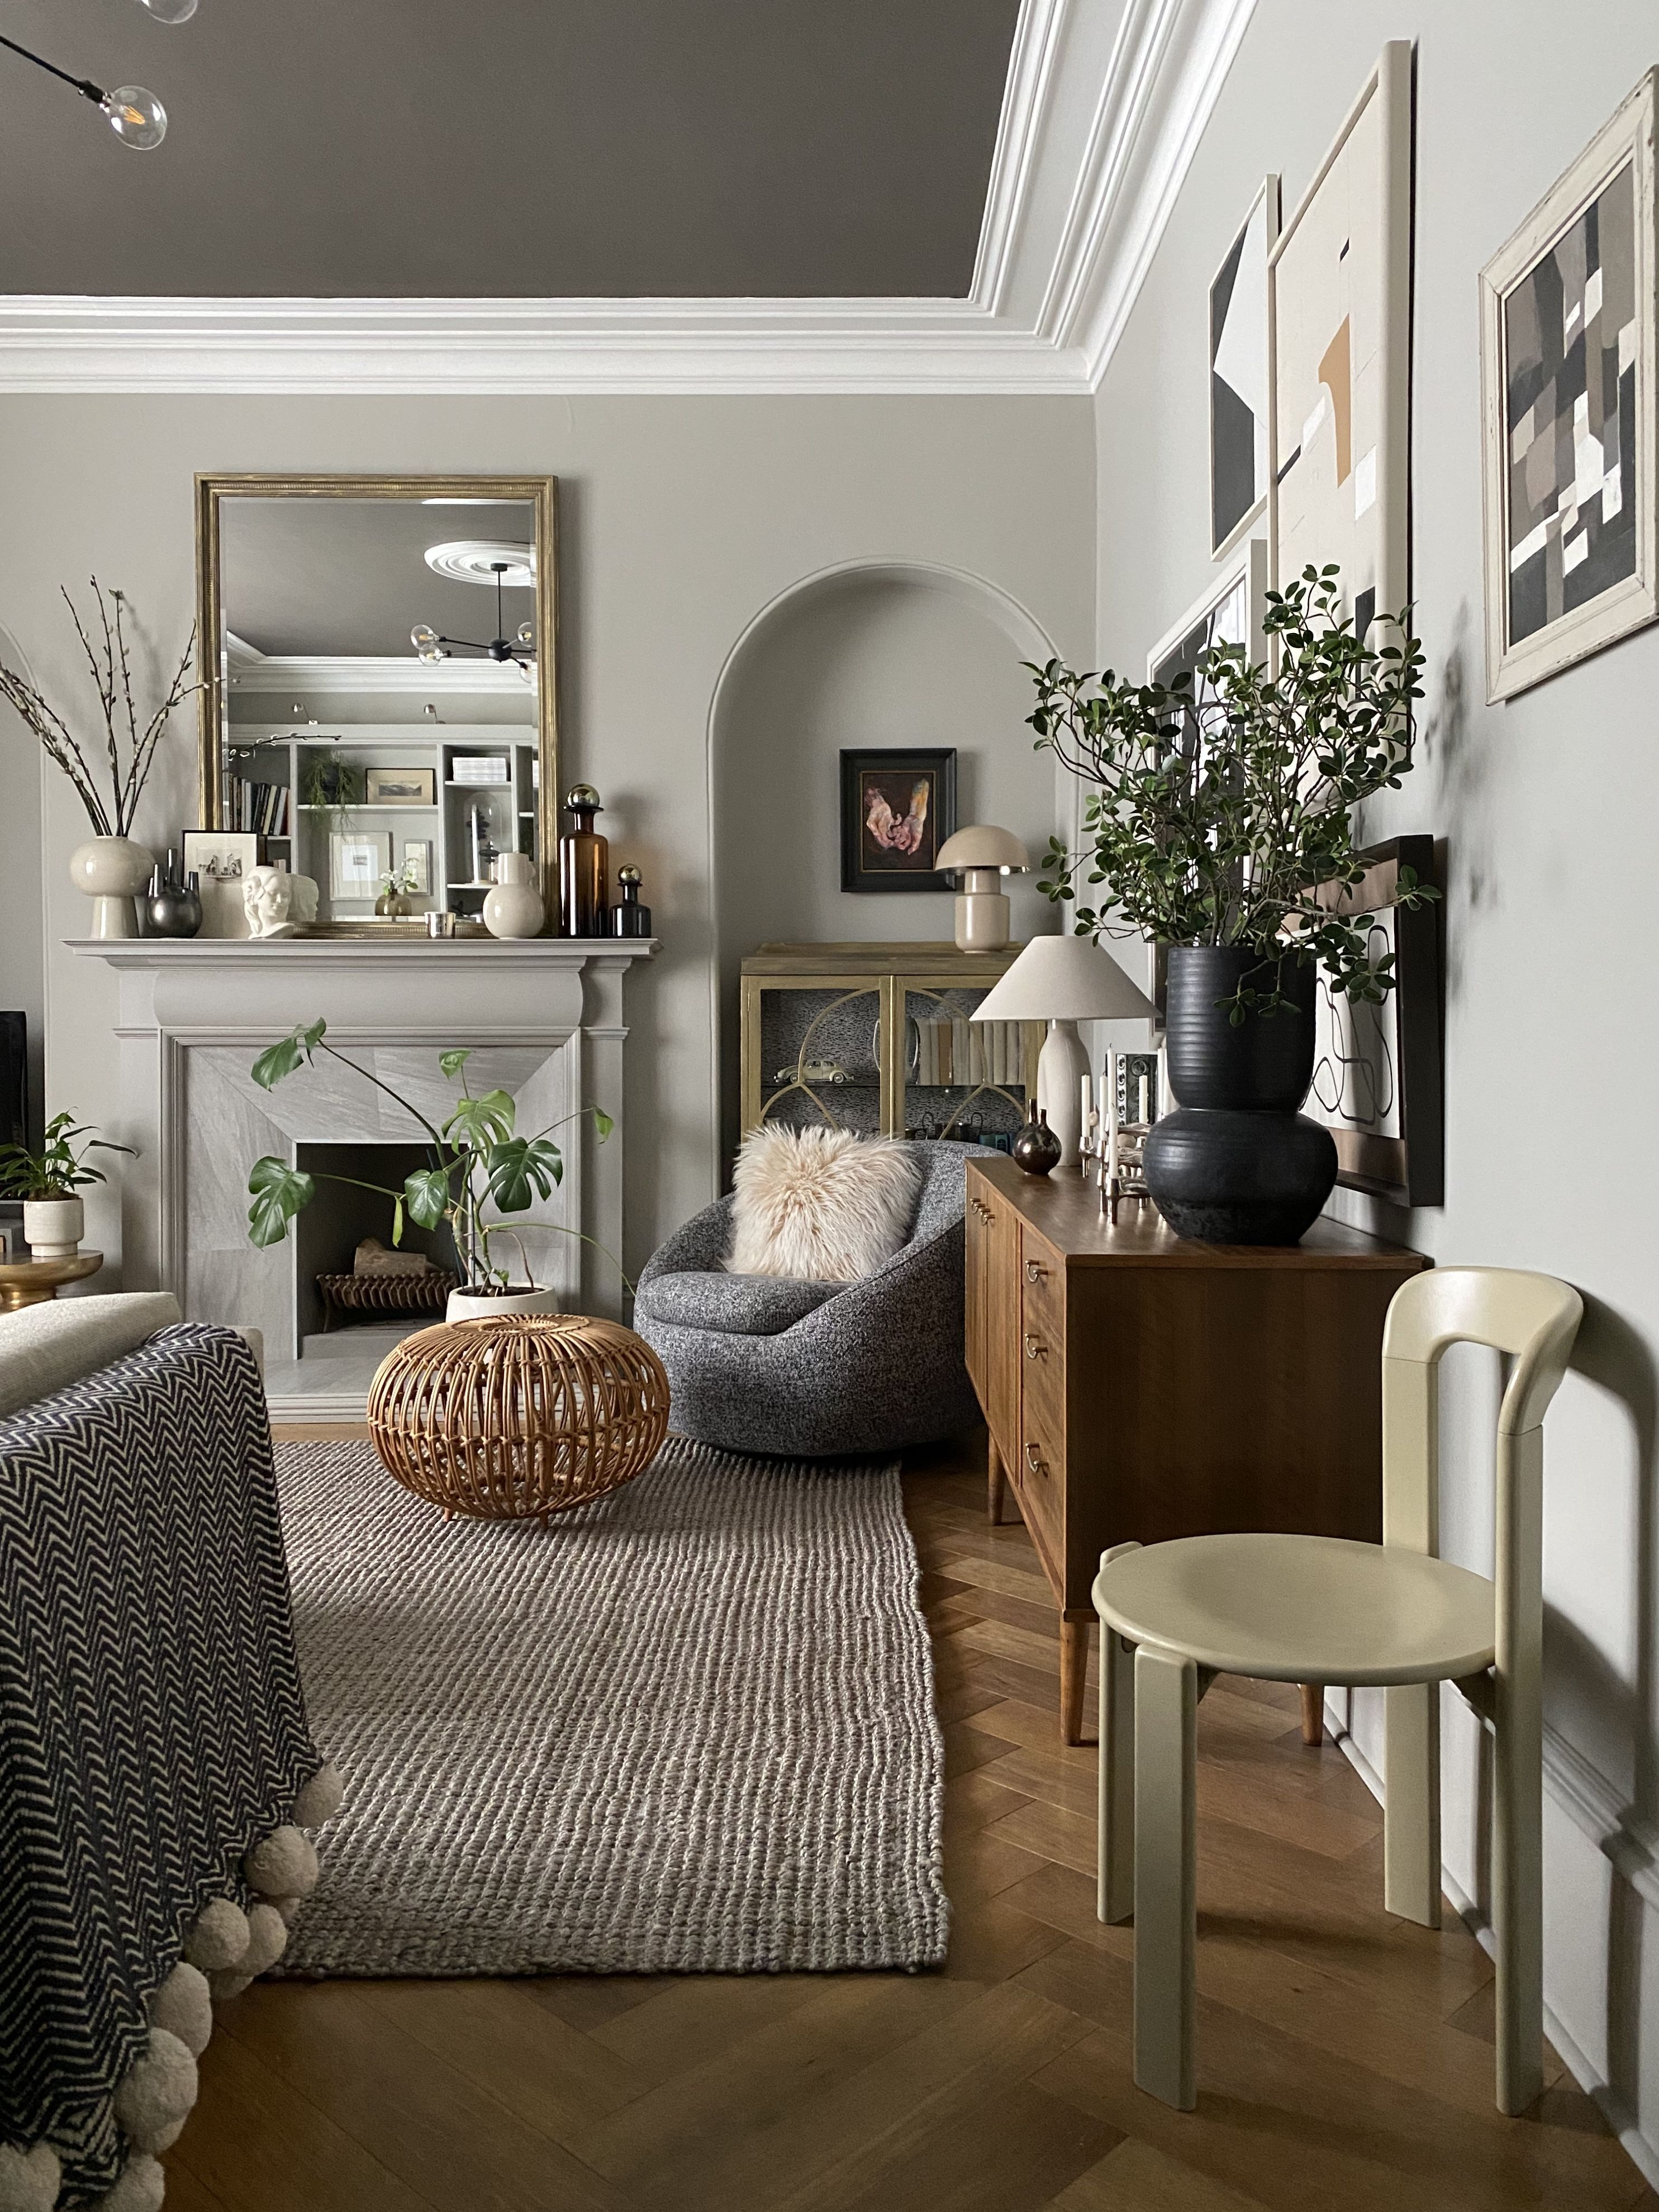 48 Awesome Living Room Color Scheme Ideas Wohnzimmer Farbschema Wohnzimmer Farbe Zimmer Farbschemata